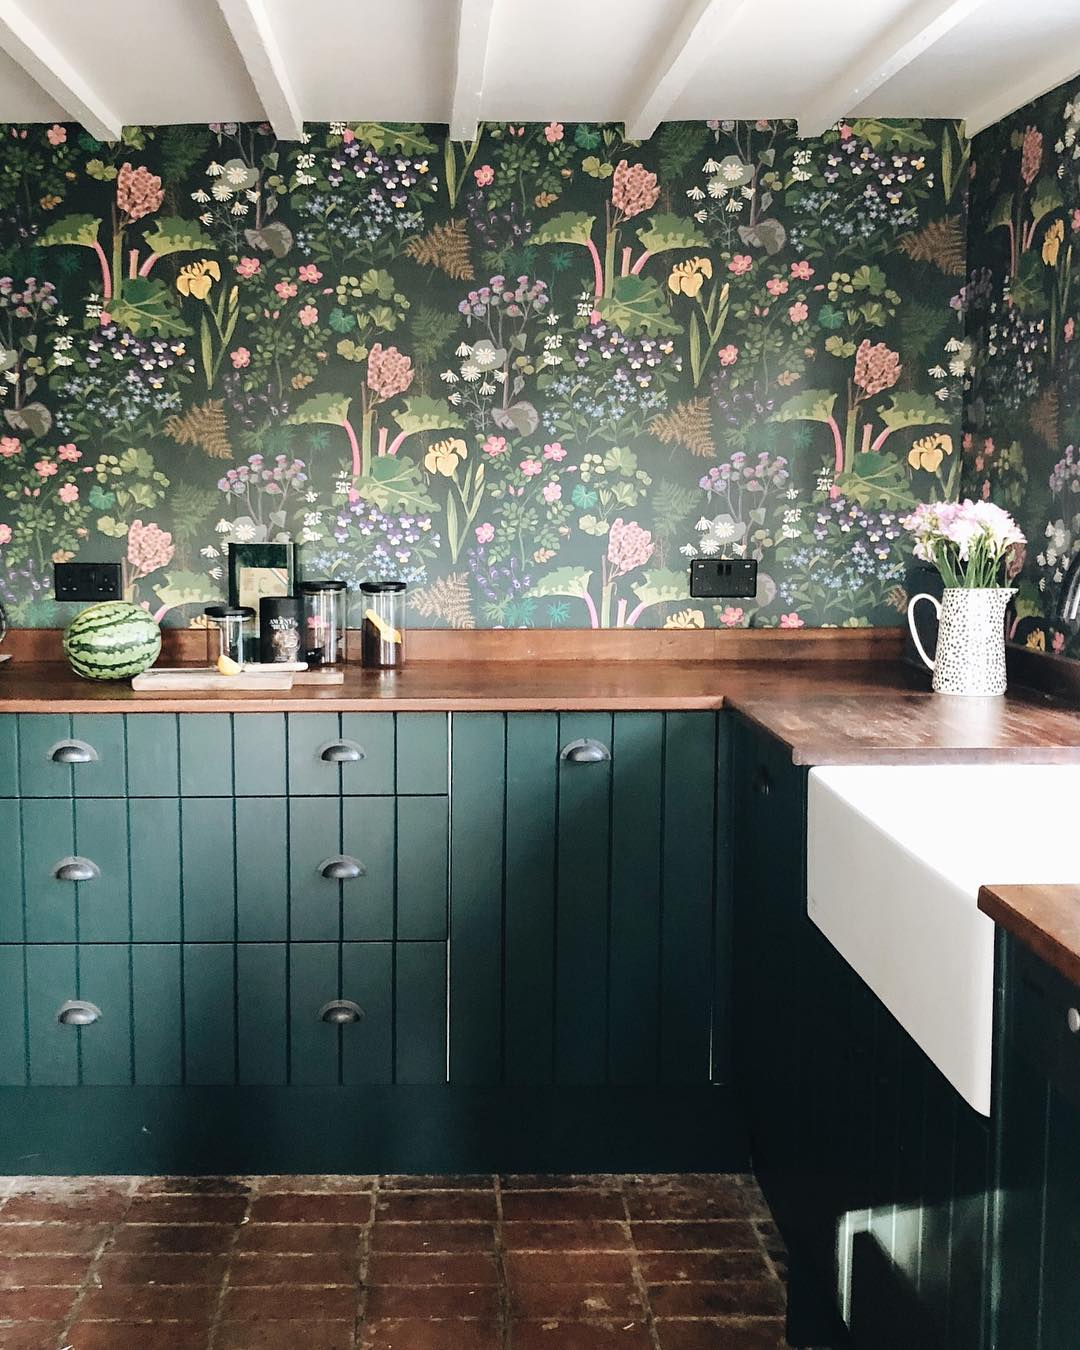 Trust Us, You're Going to Fall in Love These 7 Kitchen Wallpaper Ideas